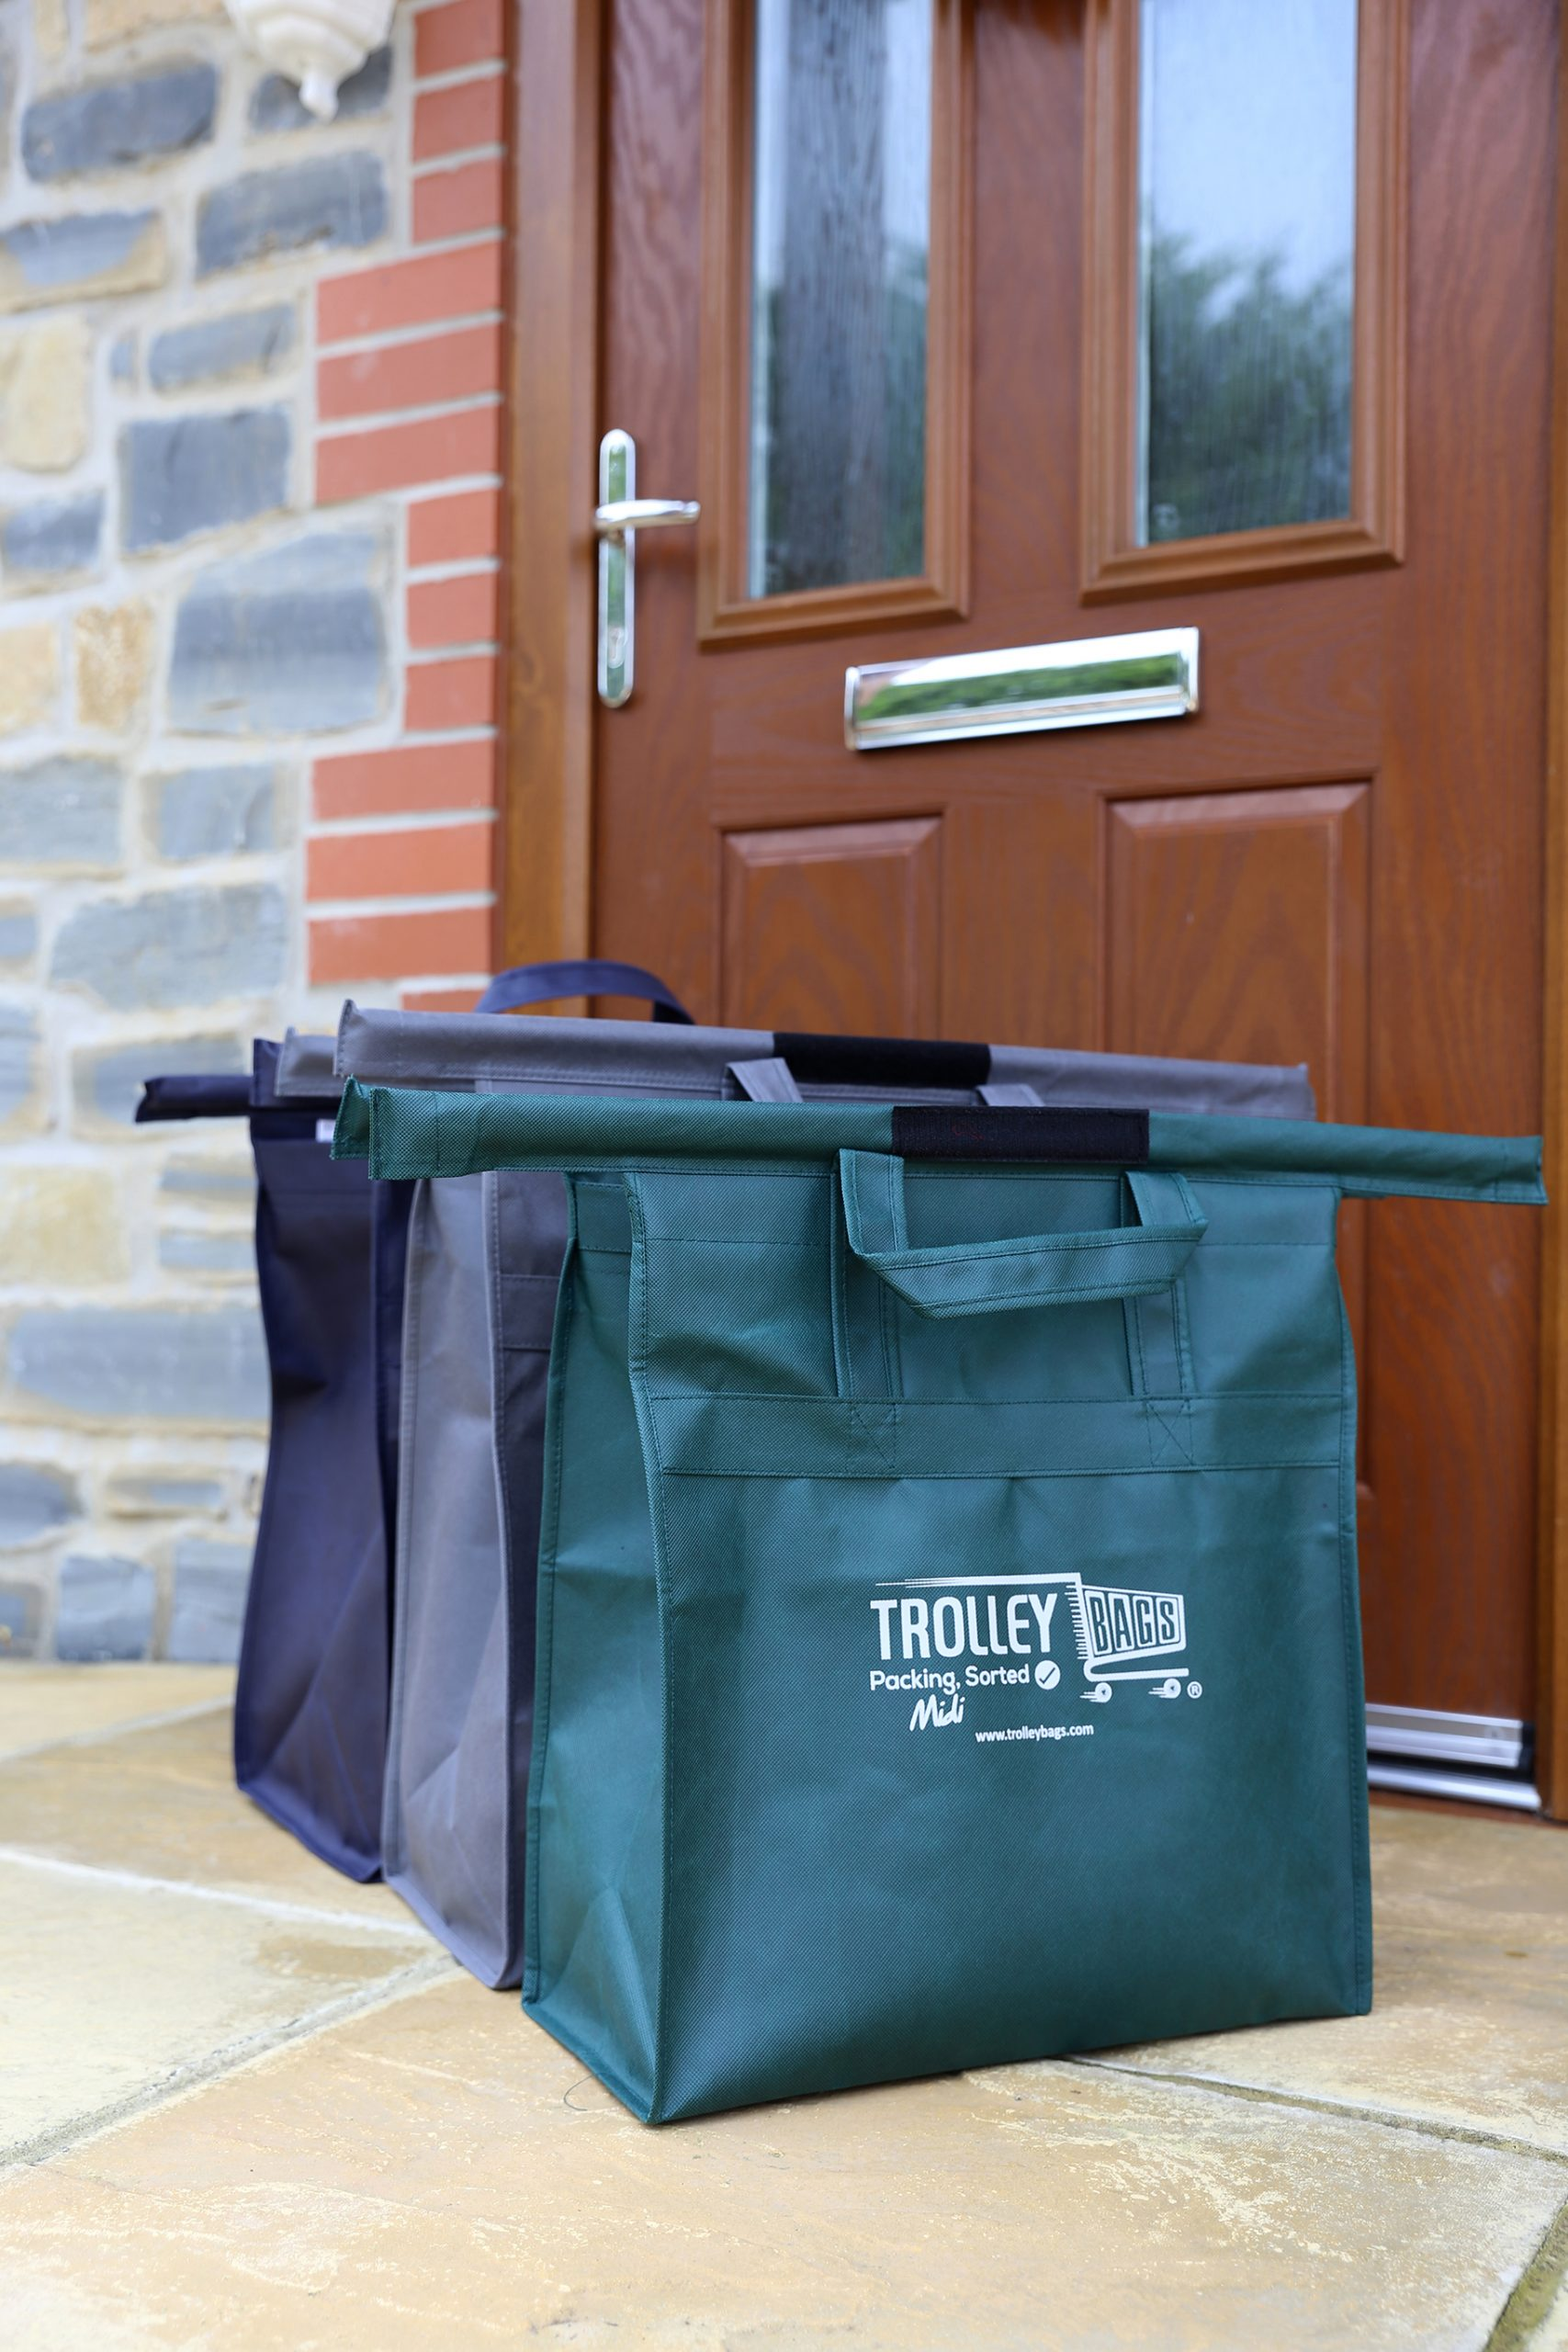 Trolley Bags Evo lifestyle products